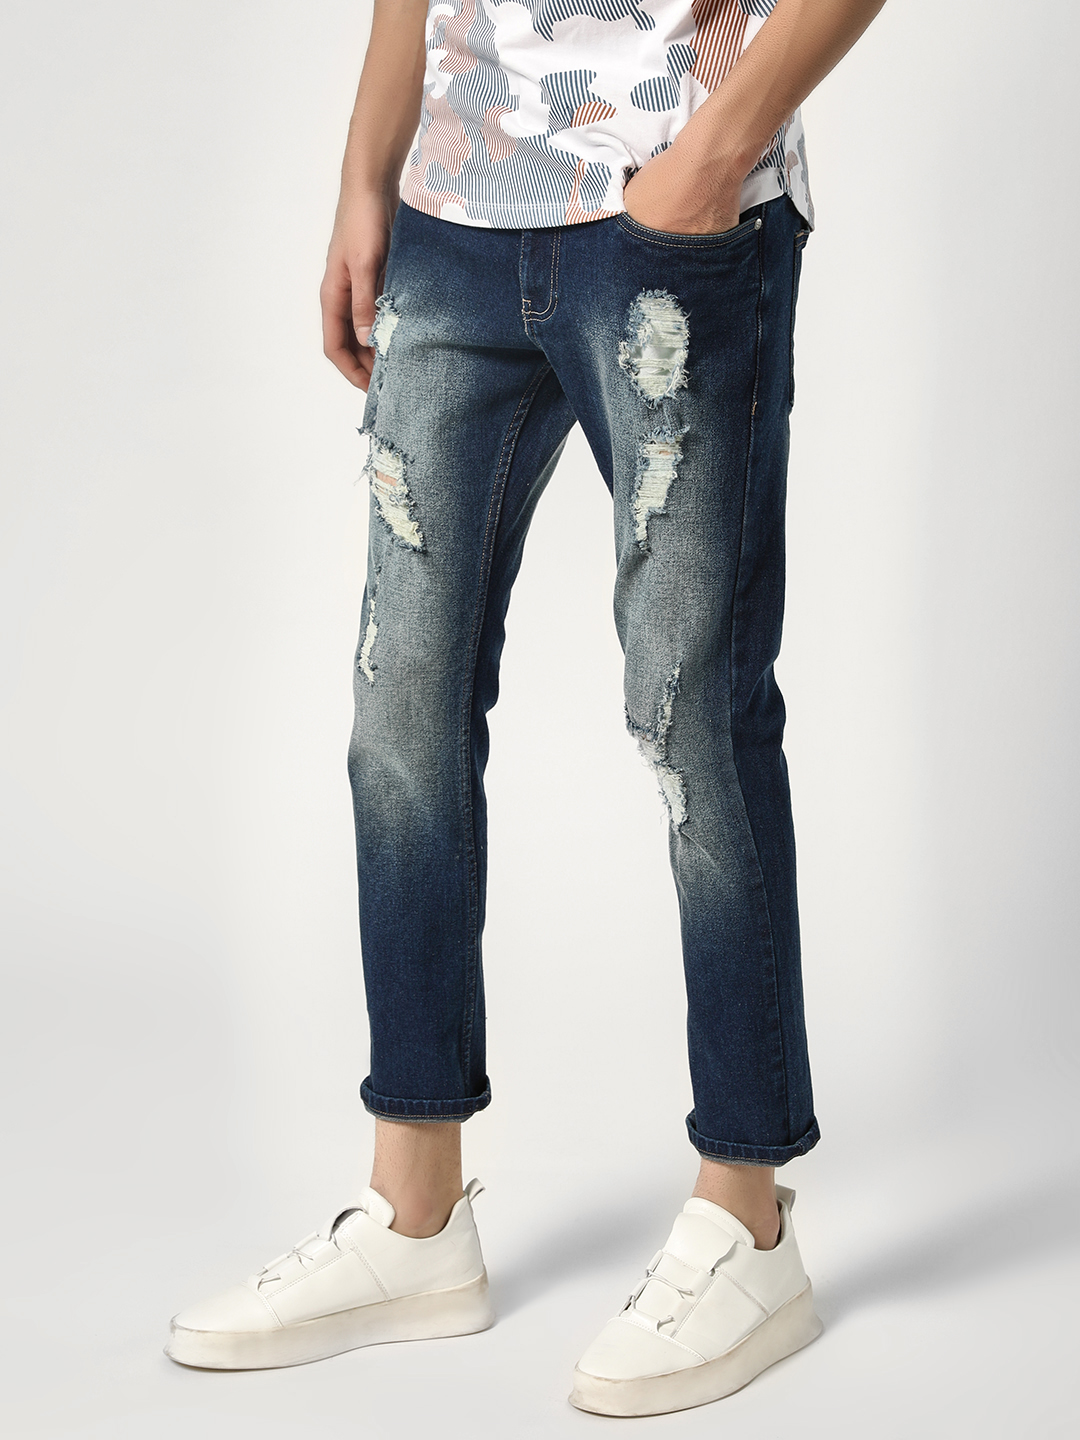 Styx & Stones Blue Distressed Tapered Slim Jeans 1